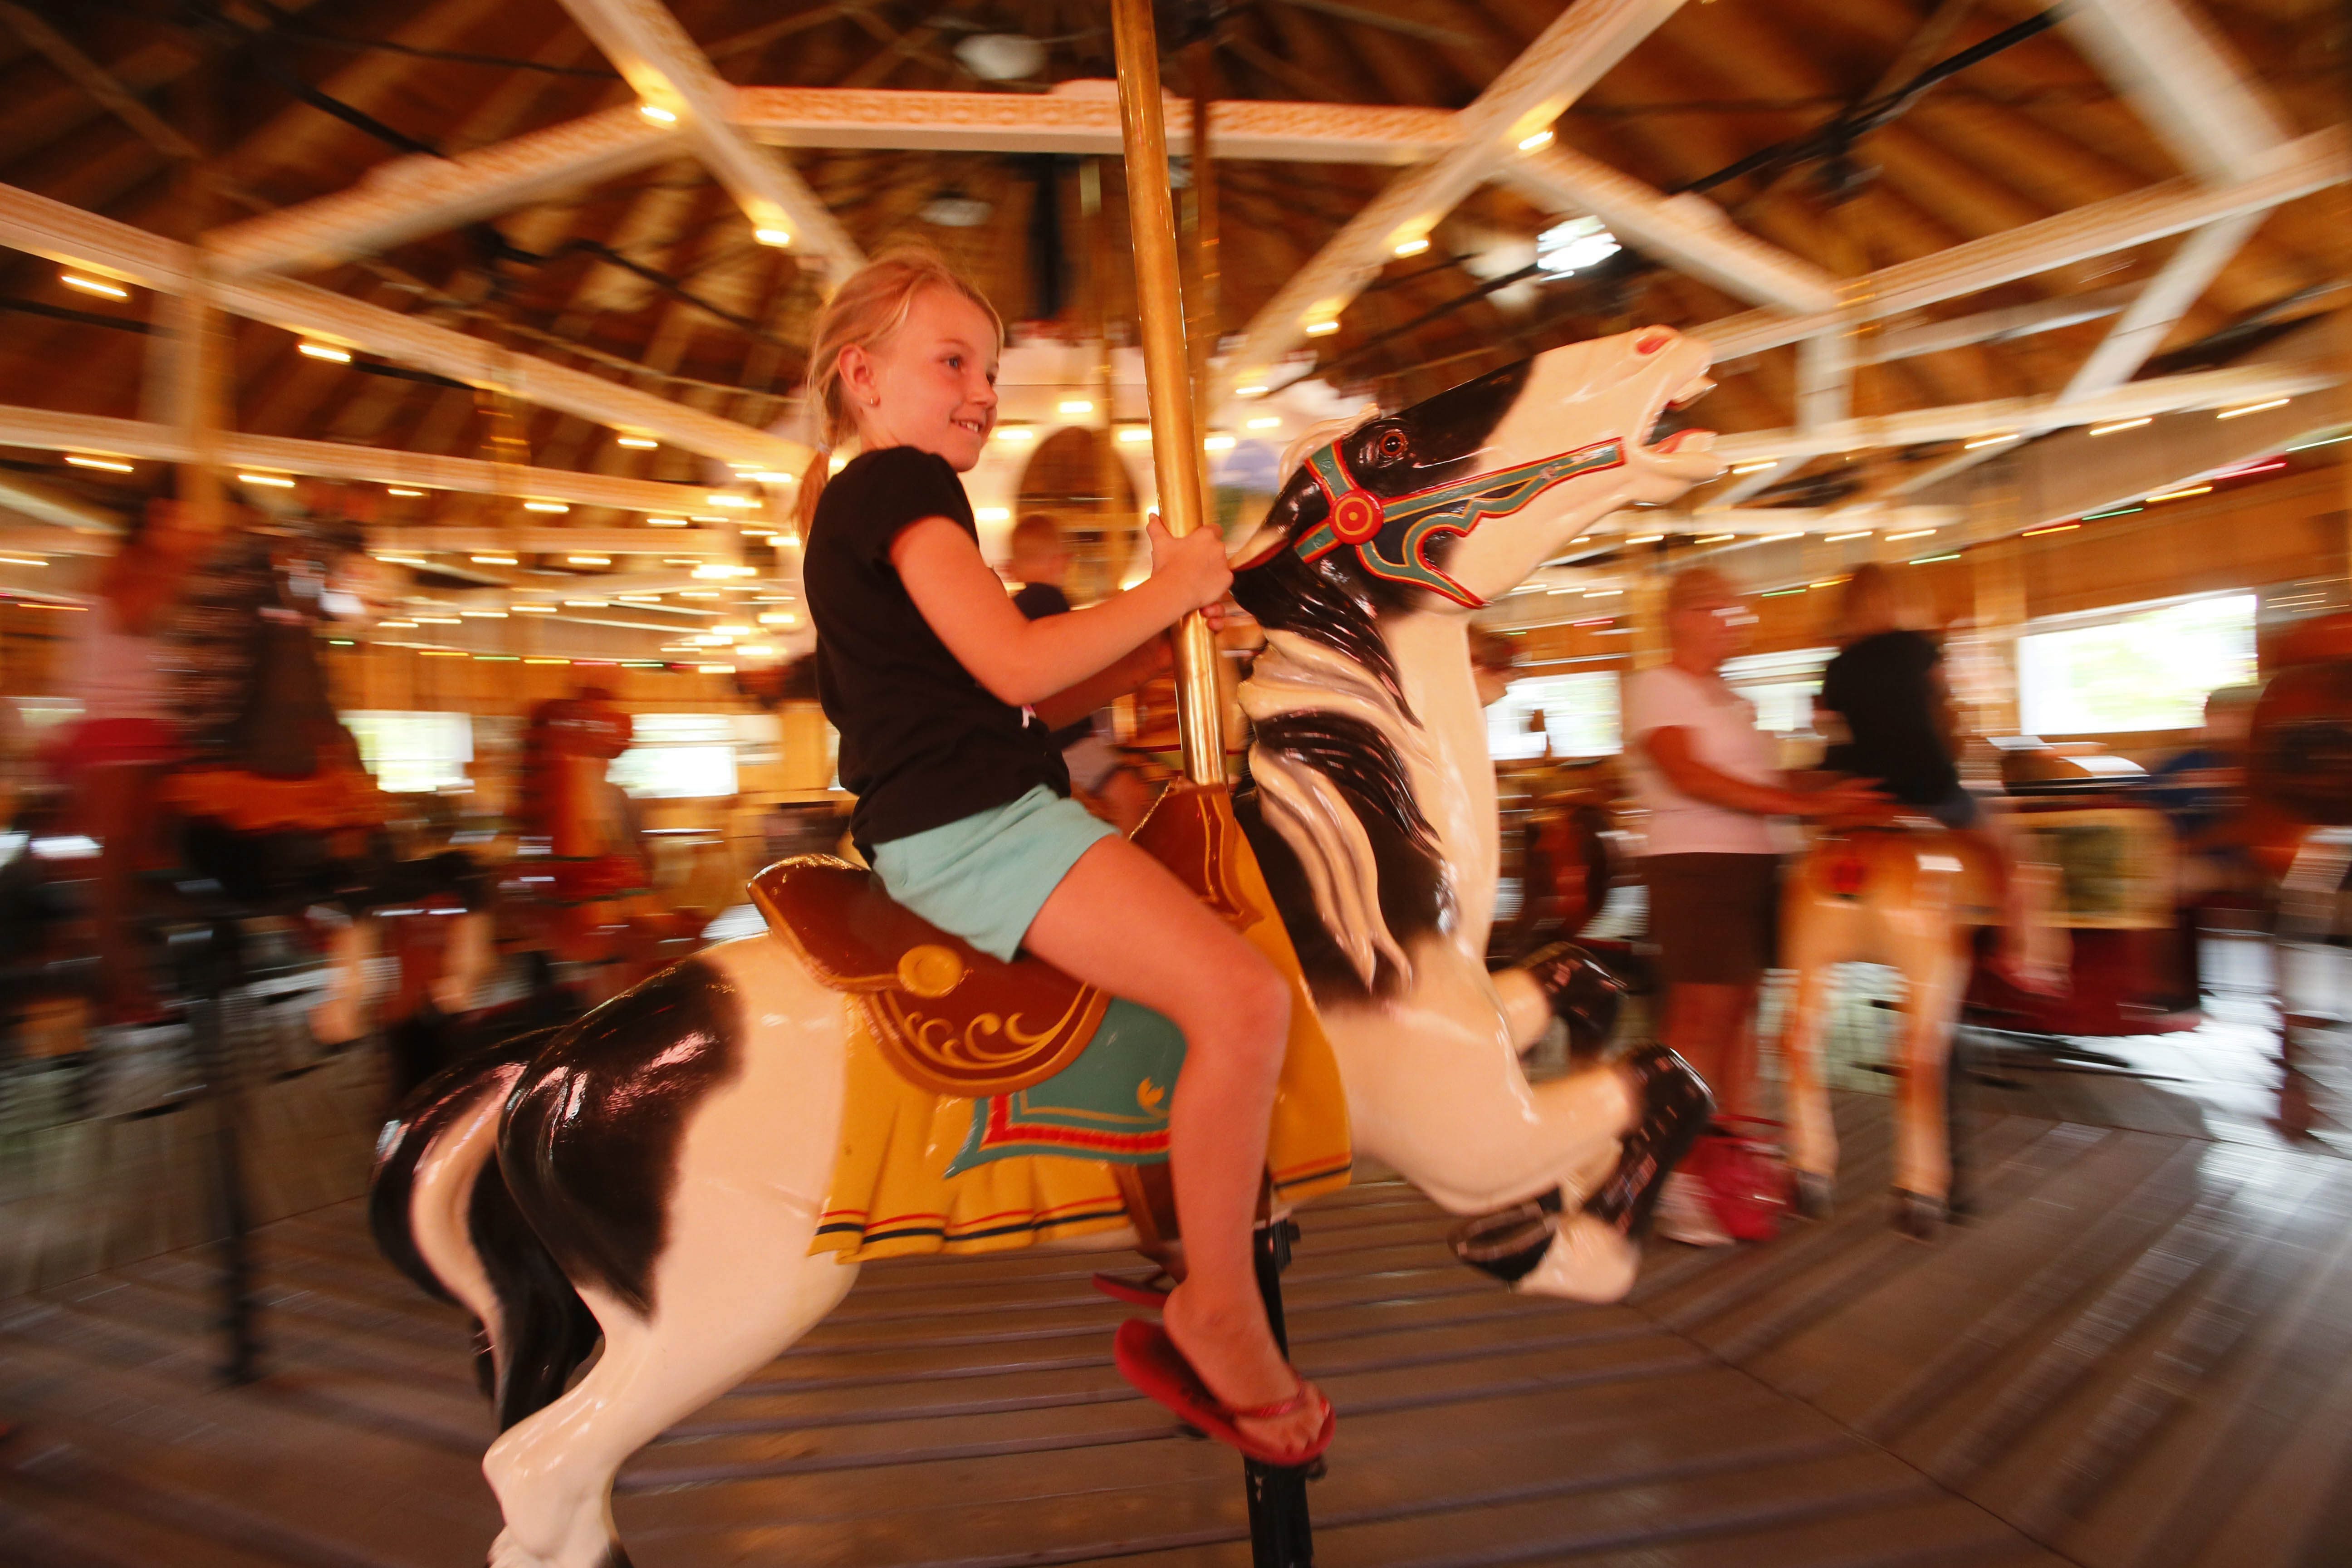 Madison Warthling goes for a ride at the Herschell Carrousel Factory Museum in North Tonawanda. (Derek Gee/Buffalo News)